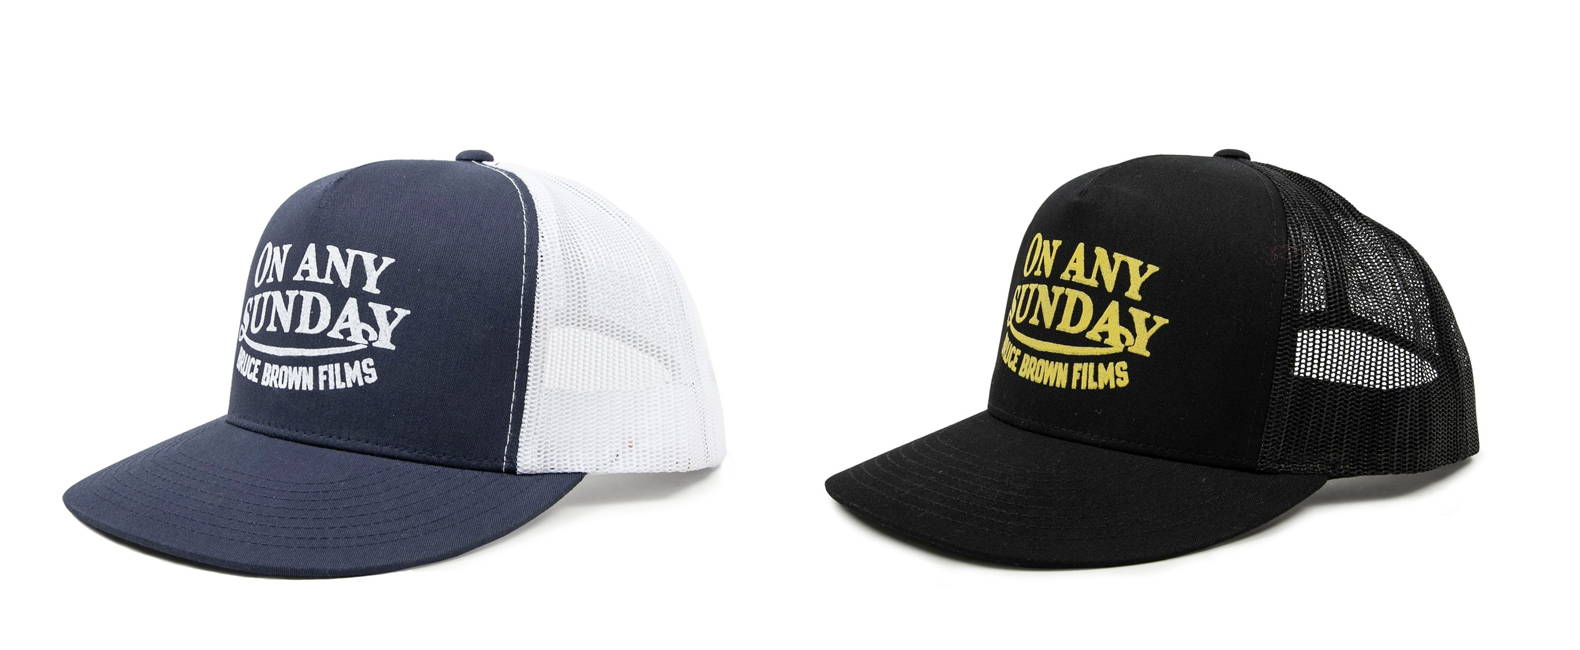 Iron & Resin X Bruce Brown Films On Any Sunday Trucker Hats